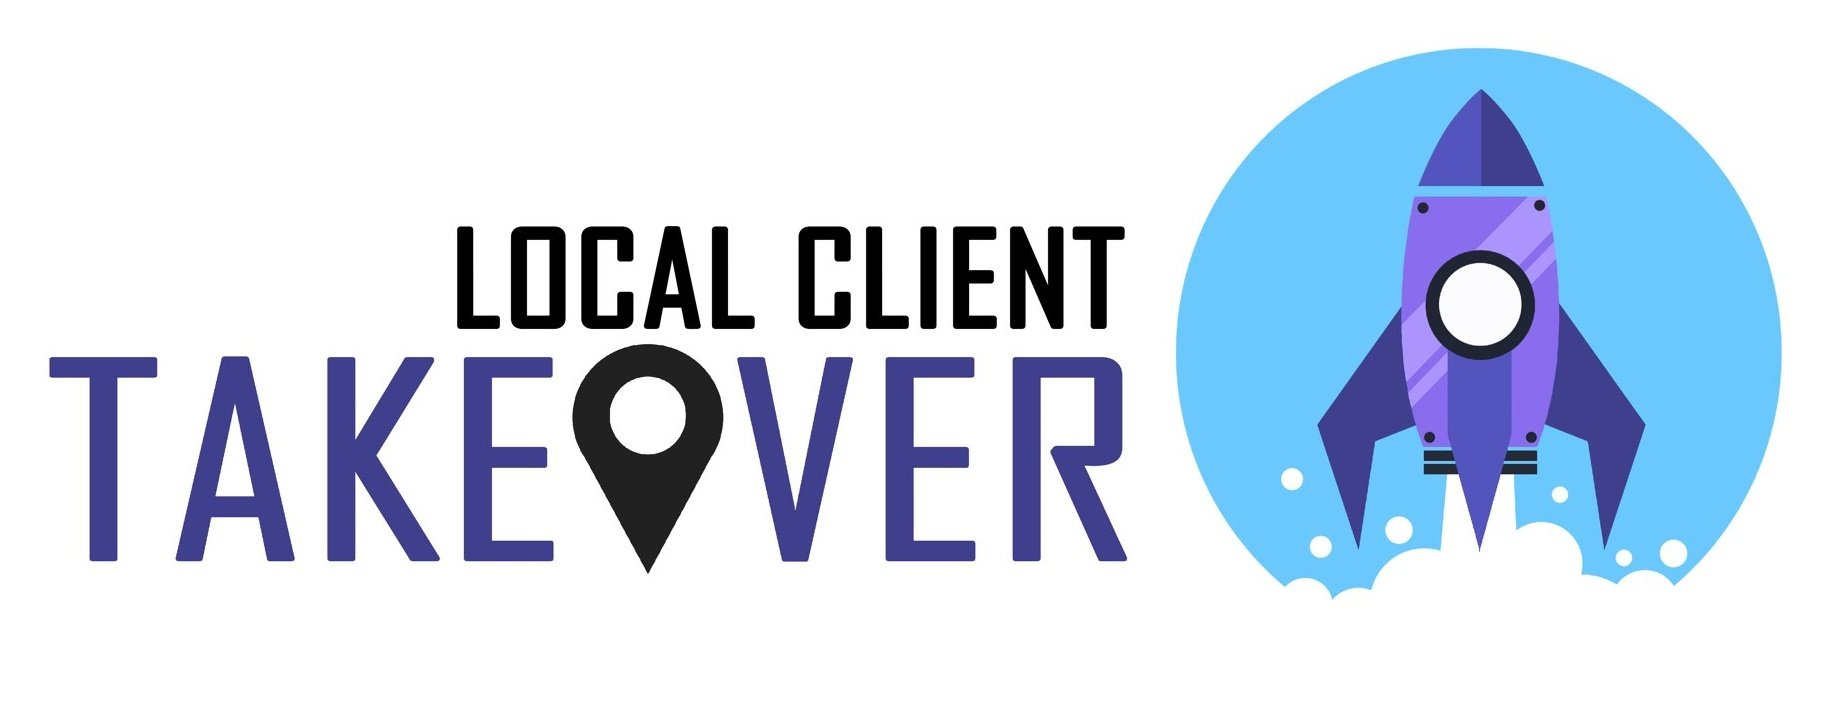 Local Client Takeover Announces Free Local SEO Training Courses